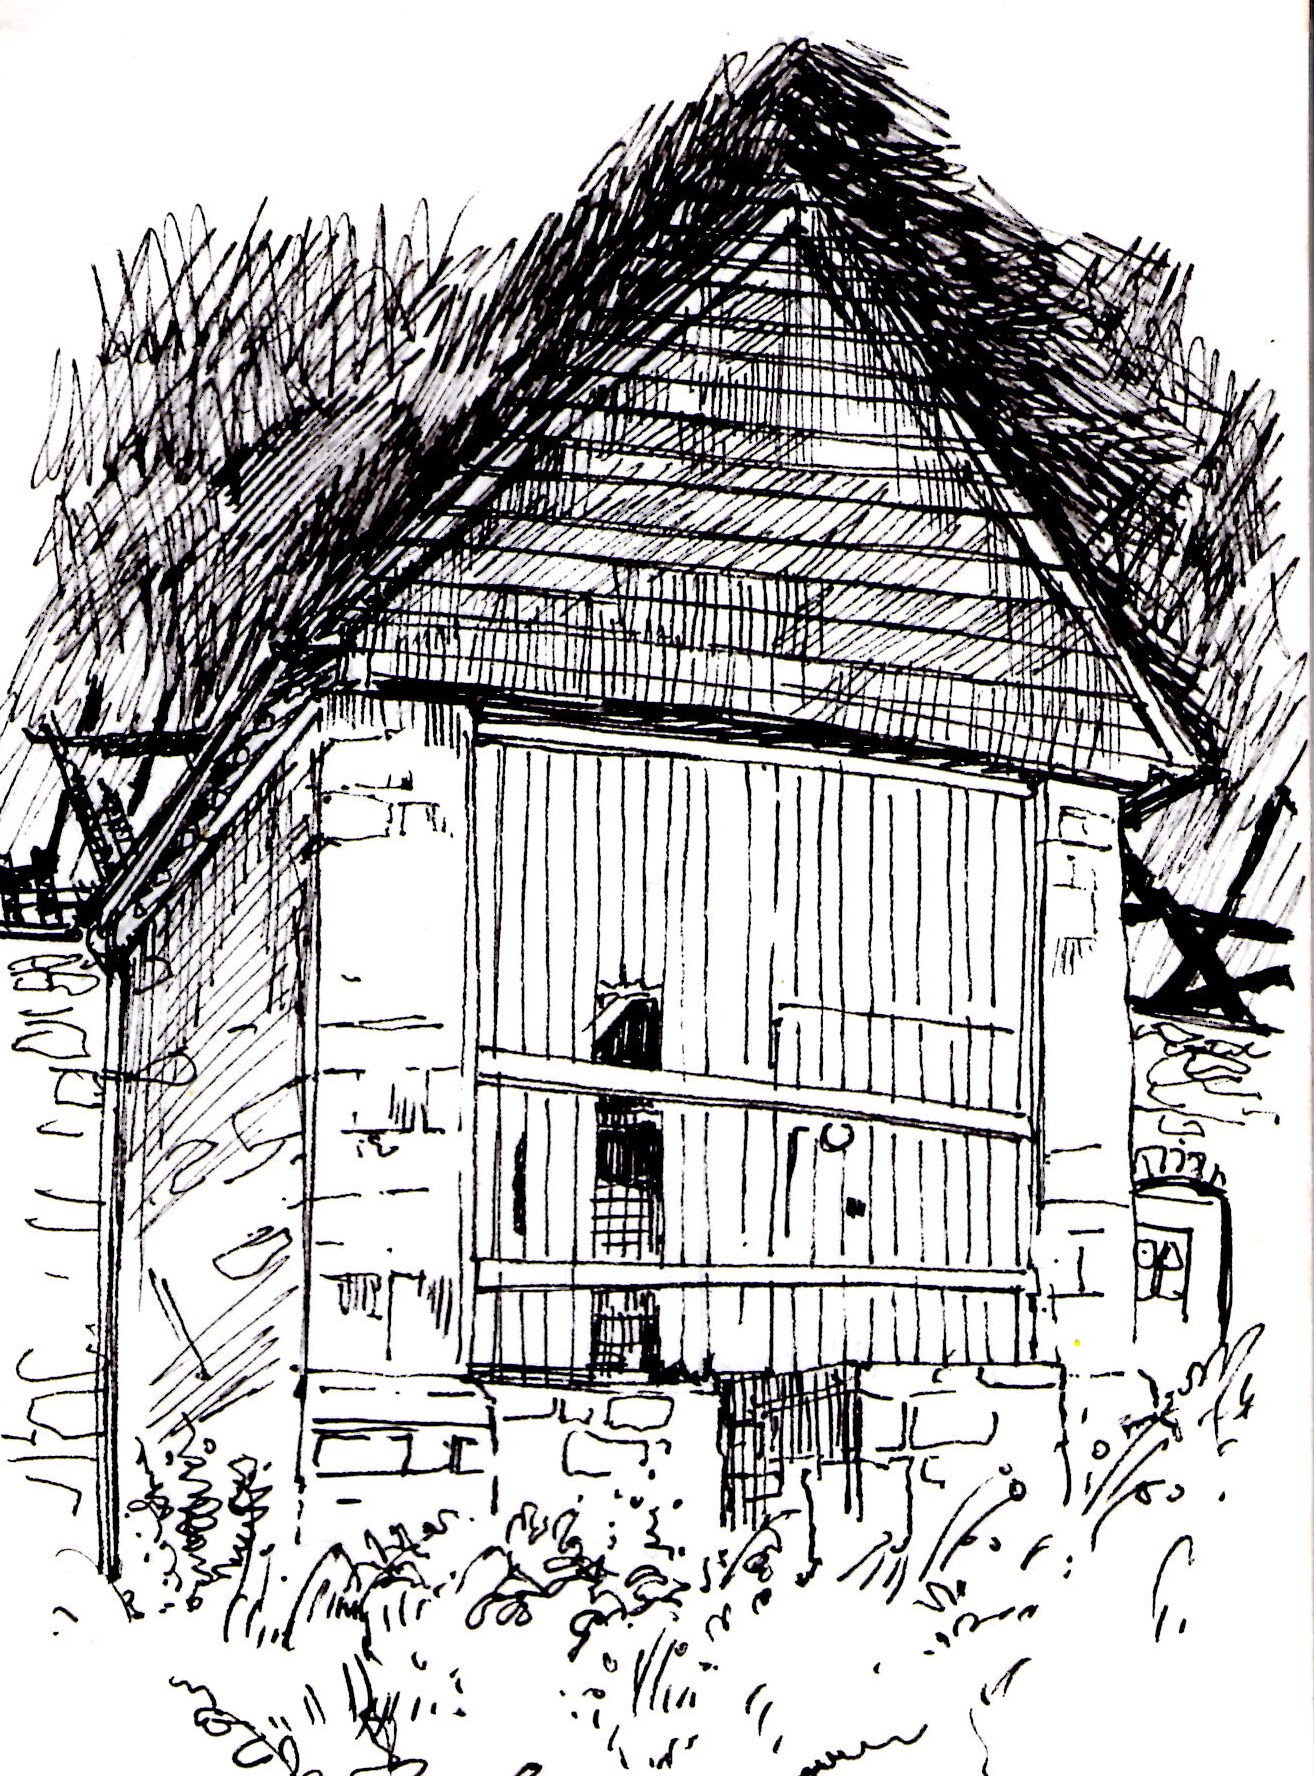 Page from my sketchbook- old wooden side door of old stone barn-KBMorgan